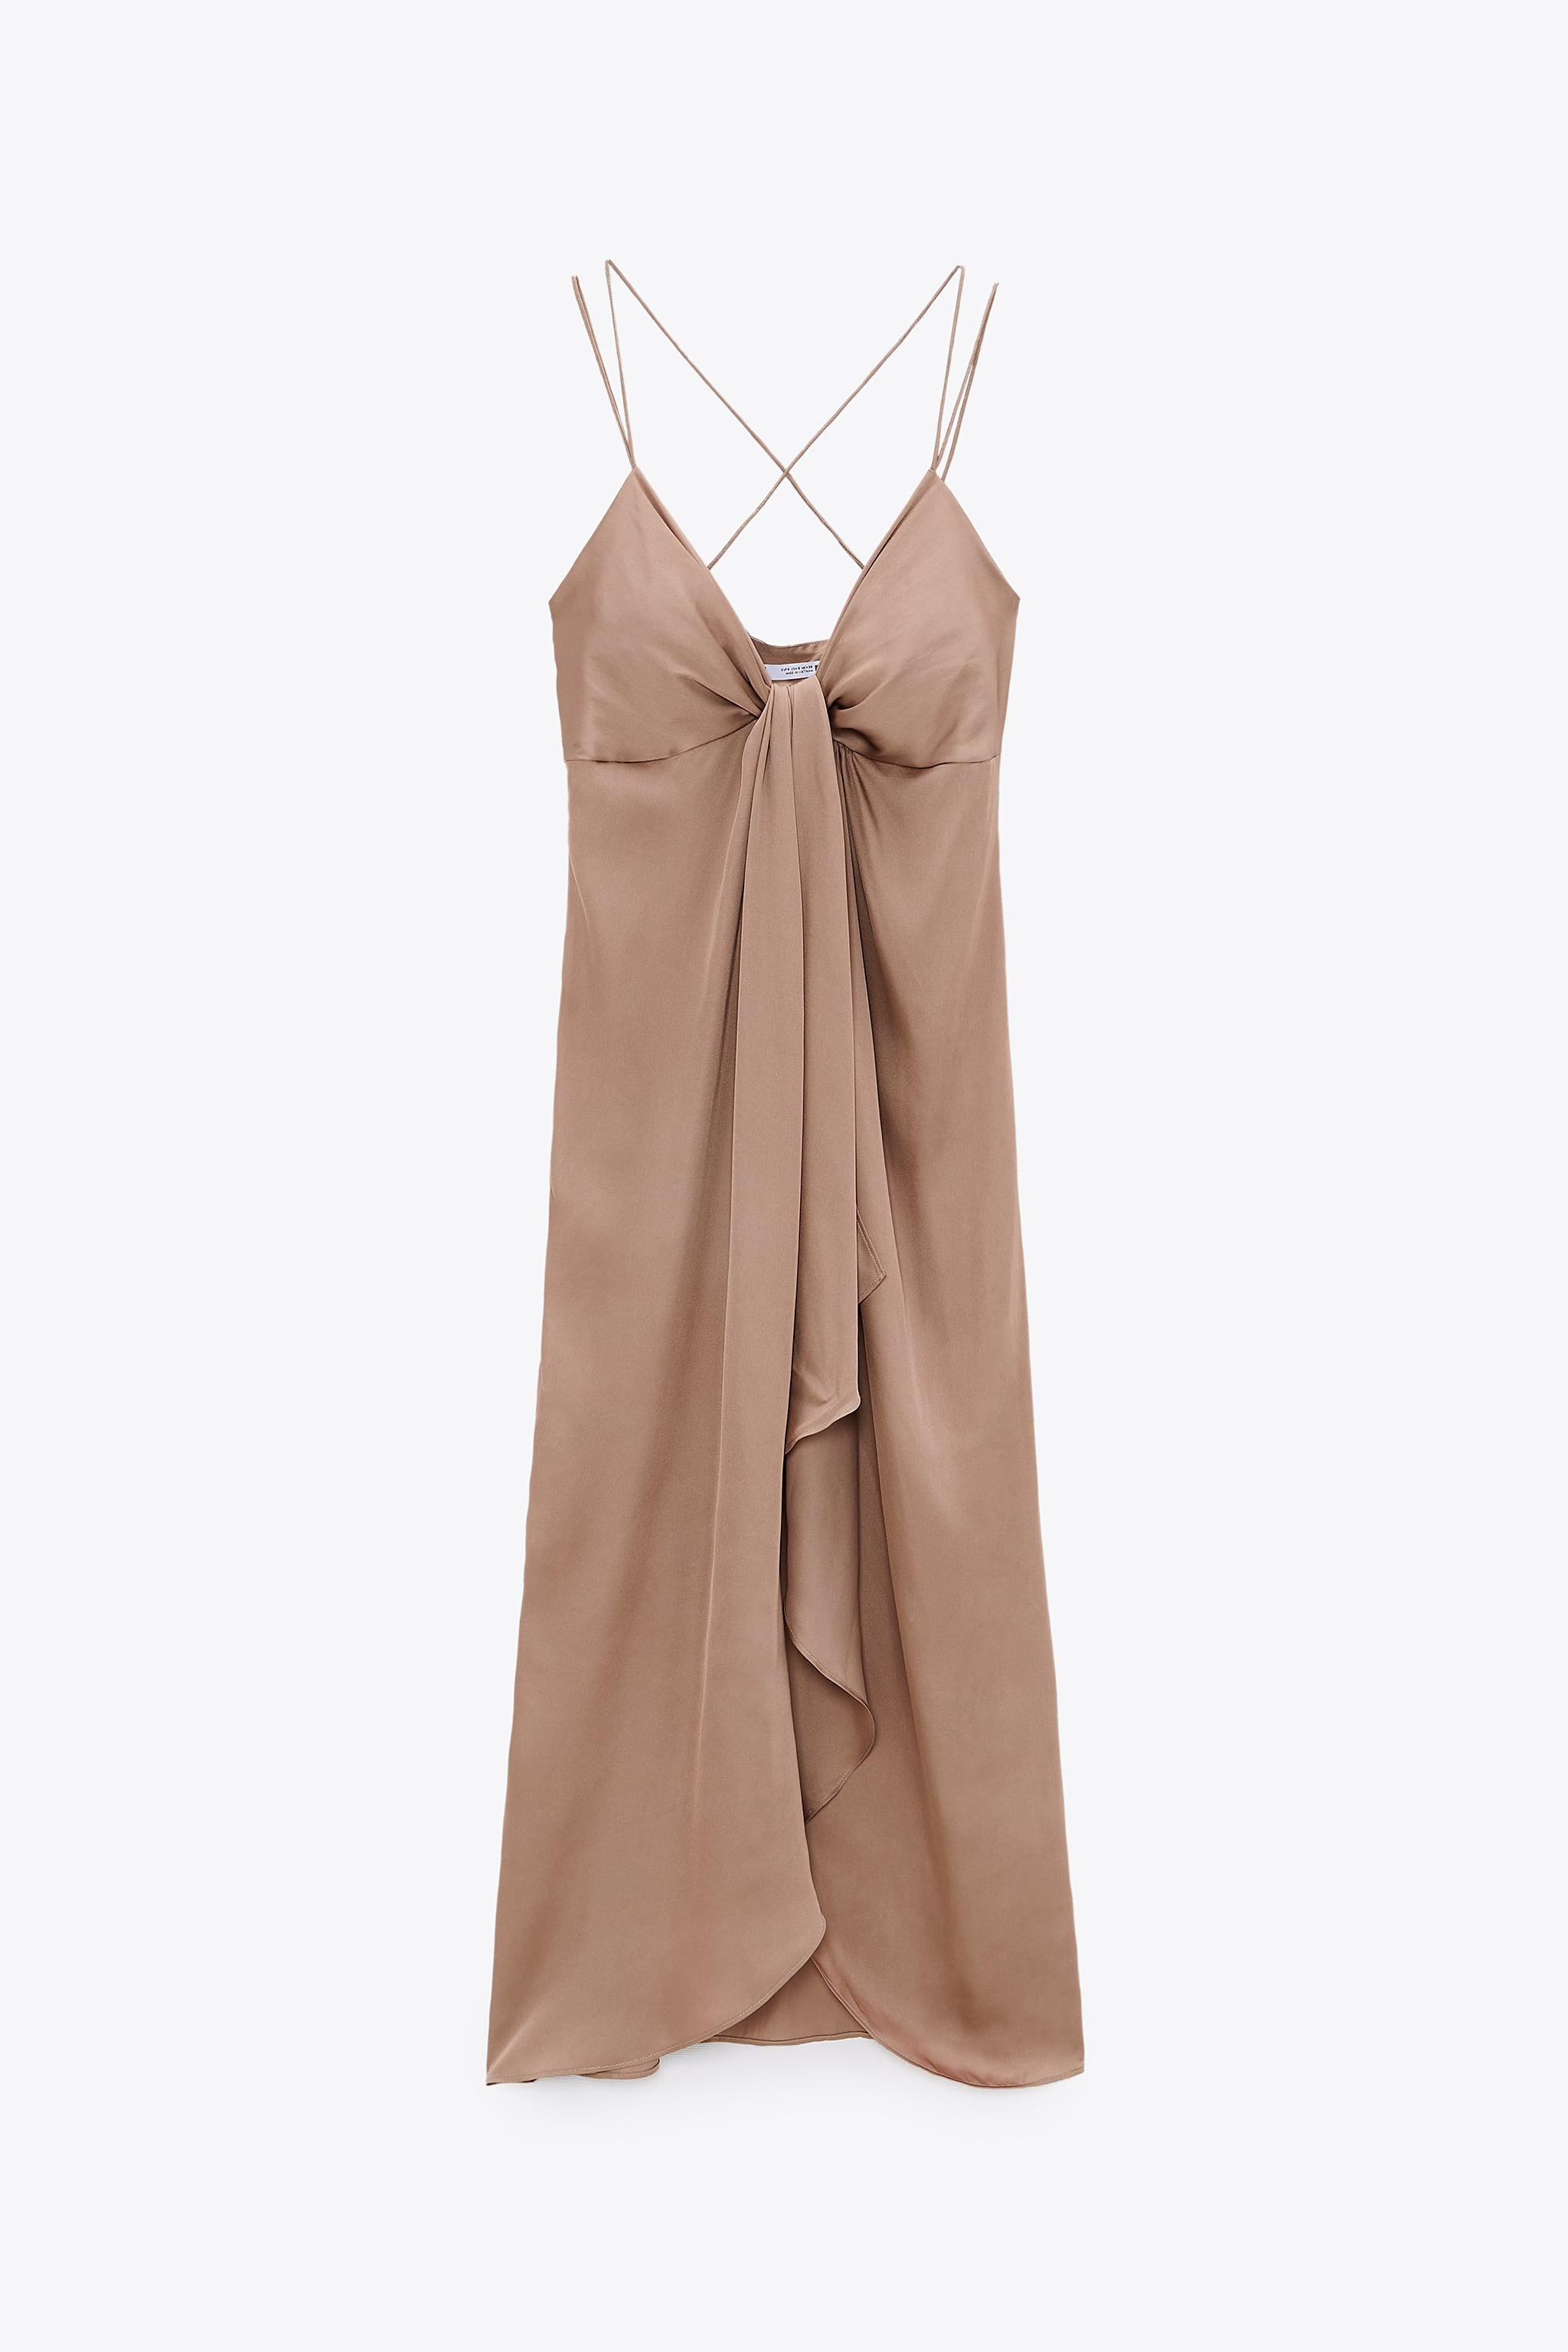 KNOTTED SLIP DRESS 4